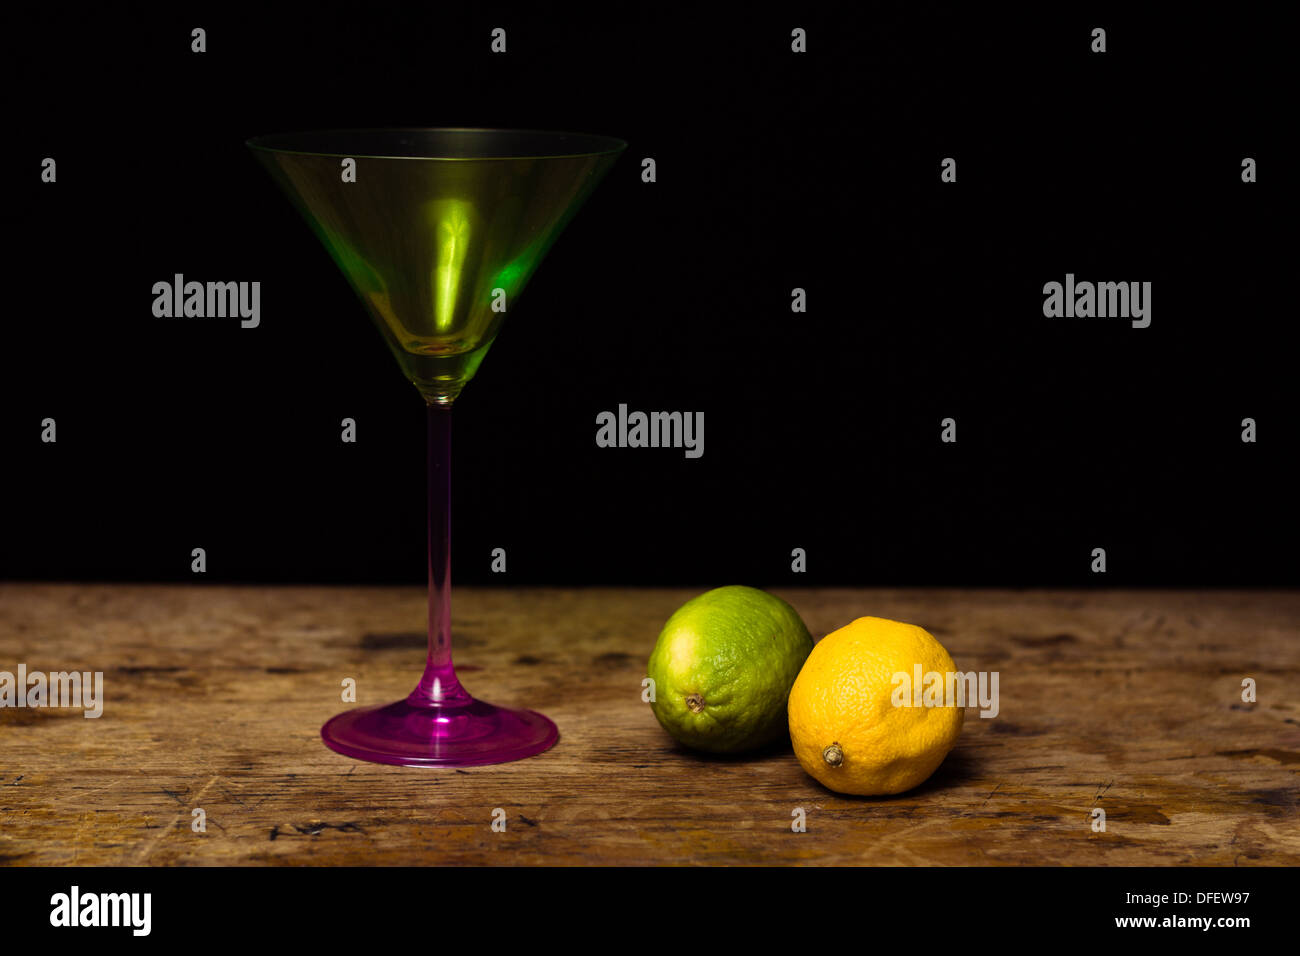 Lemon and lime next to a tall martini glass on wood surface Stock Photo